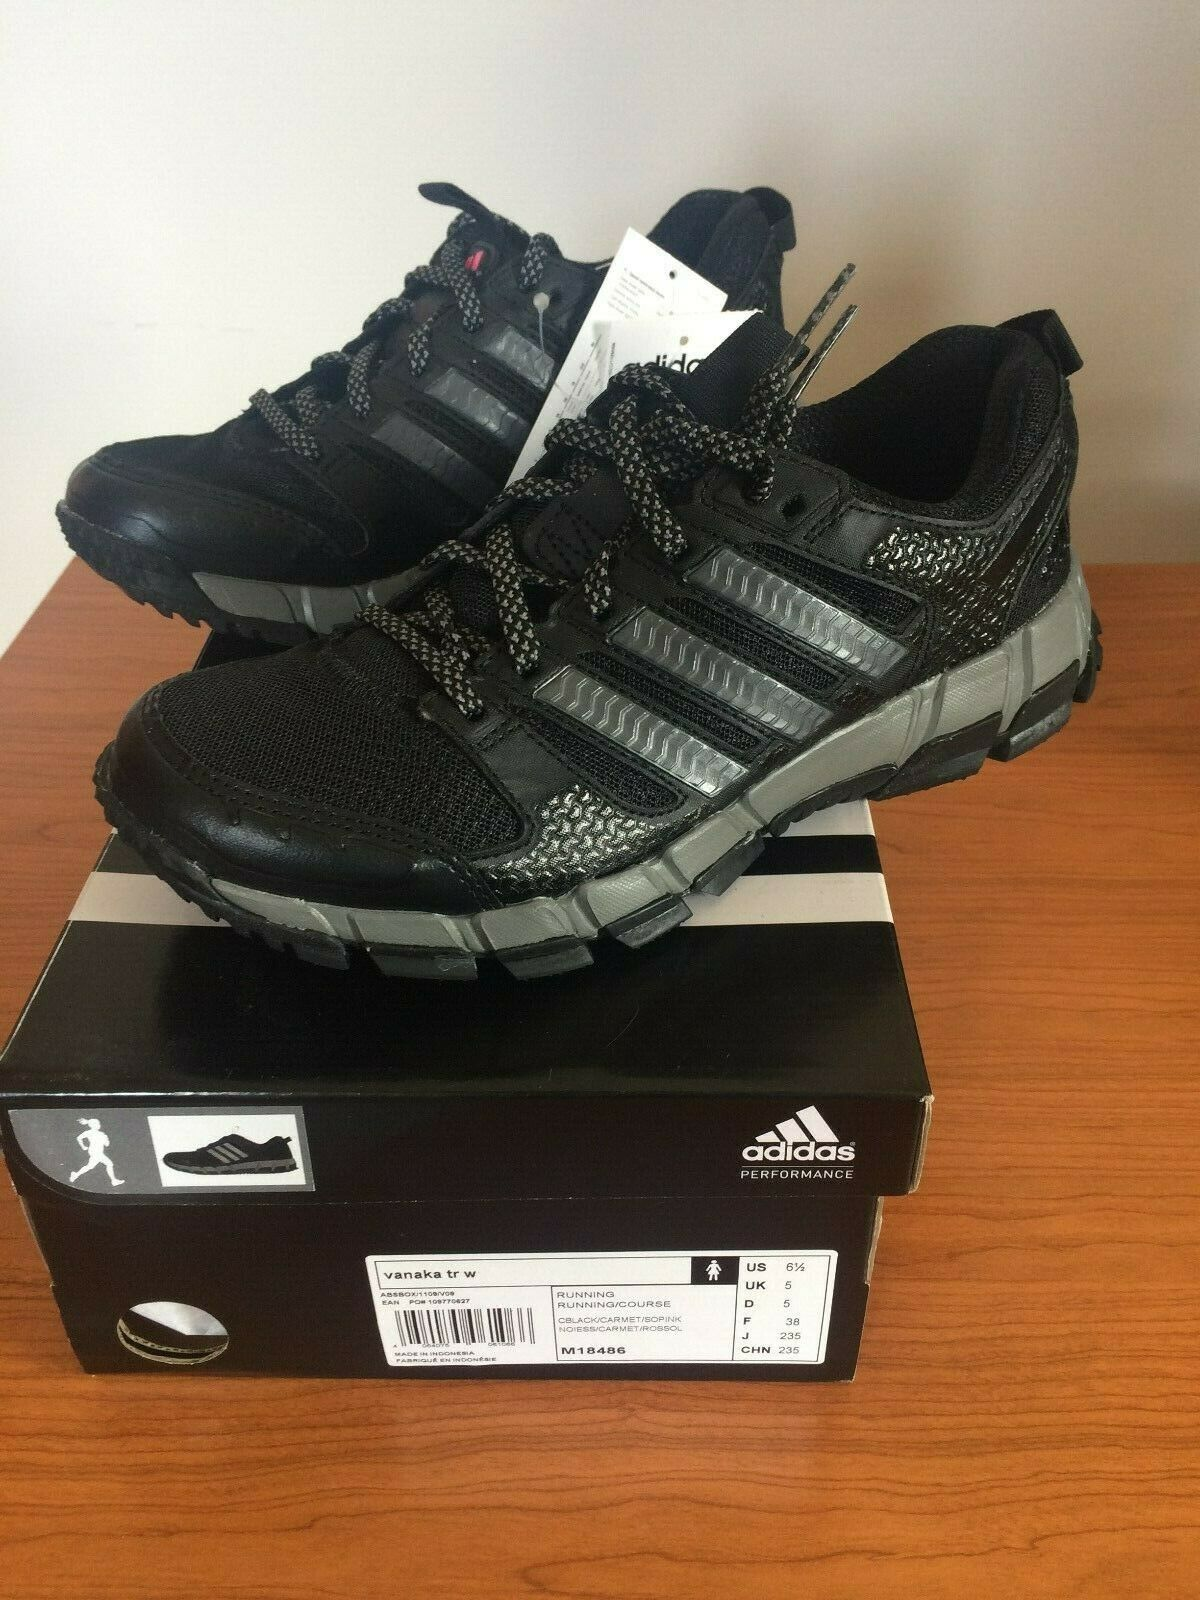 Adidas shoes vanaka tr w m18486 Brand new in its box